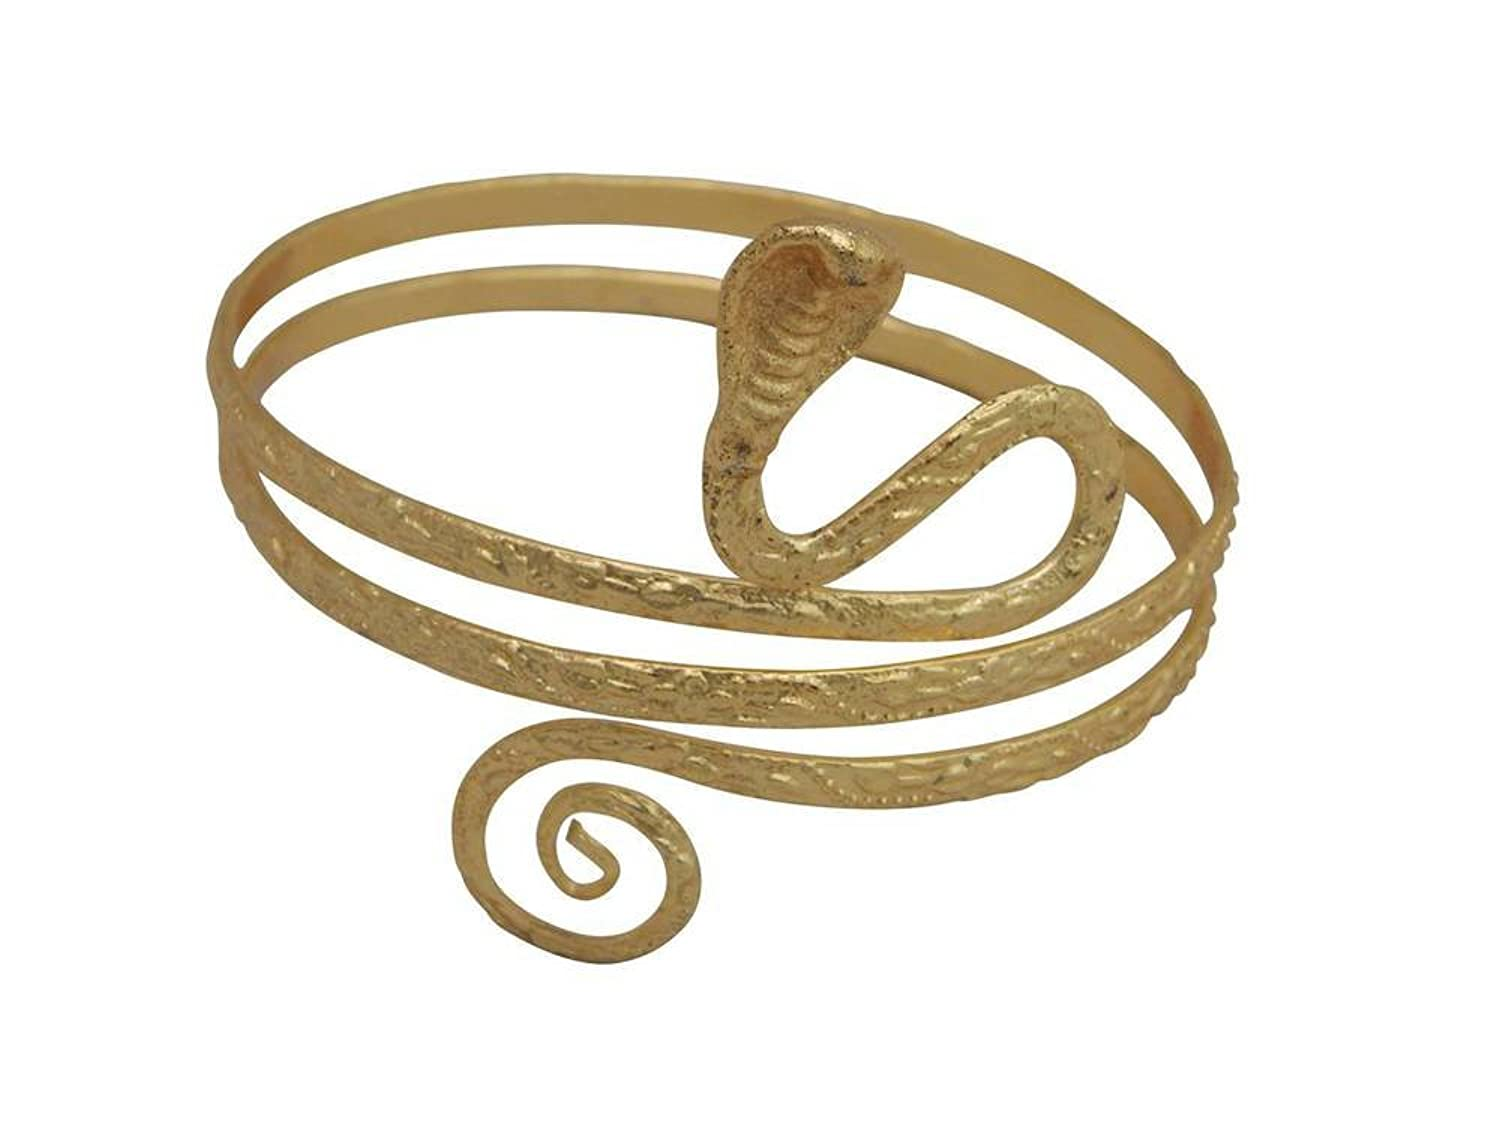 Amazoncom Gold Tone Metal Upper Arm Snake Bracelet Adjustable